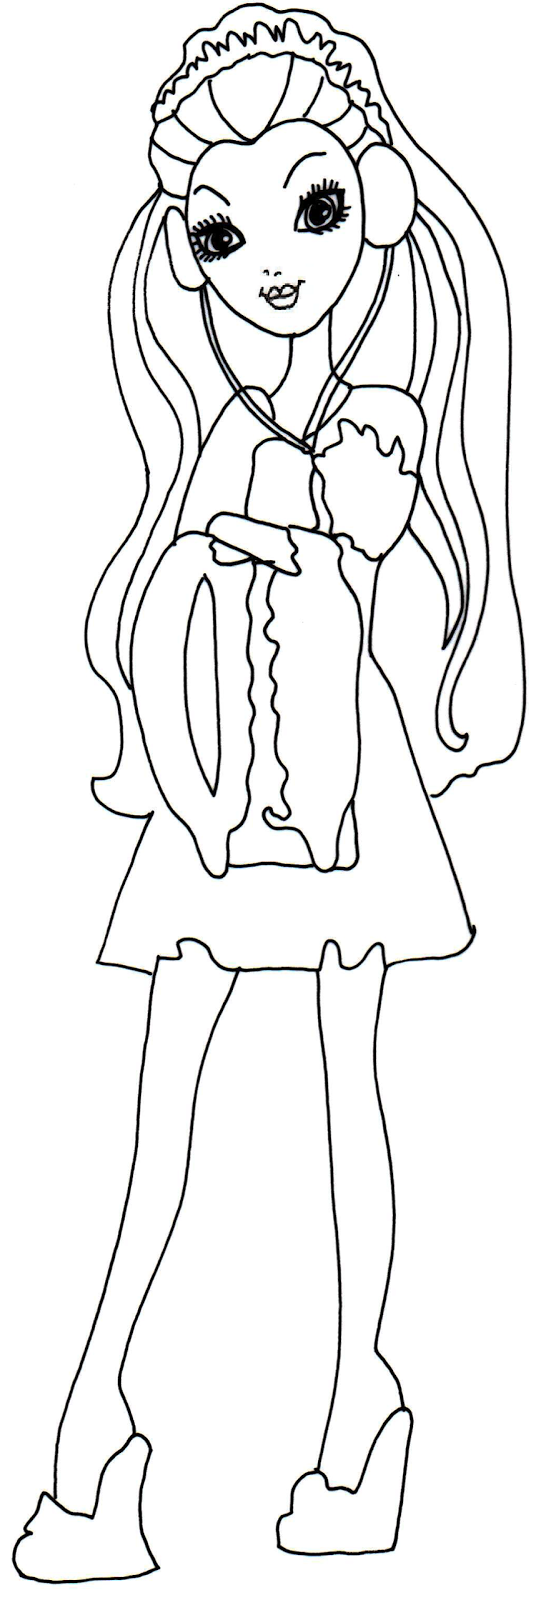 Free ever after high coloring pages january 2014 for Queen coloring page